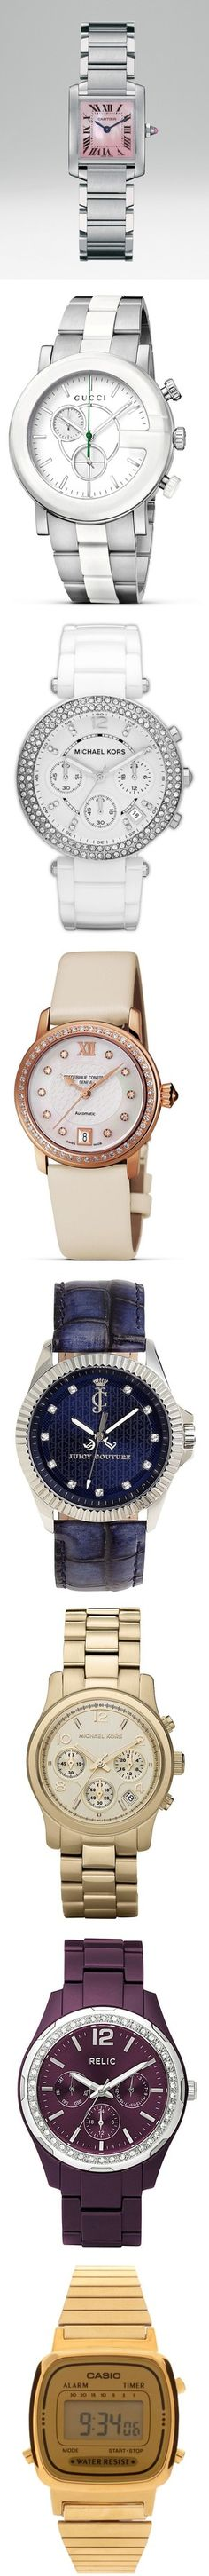 """""""My watch collection"""" by lookbookapp on Polyvore"""